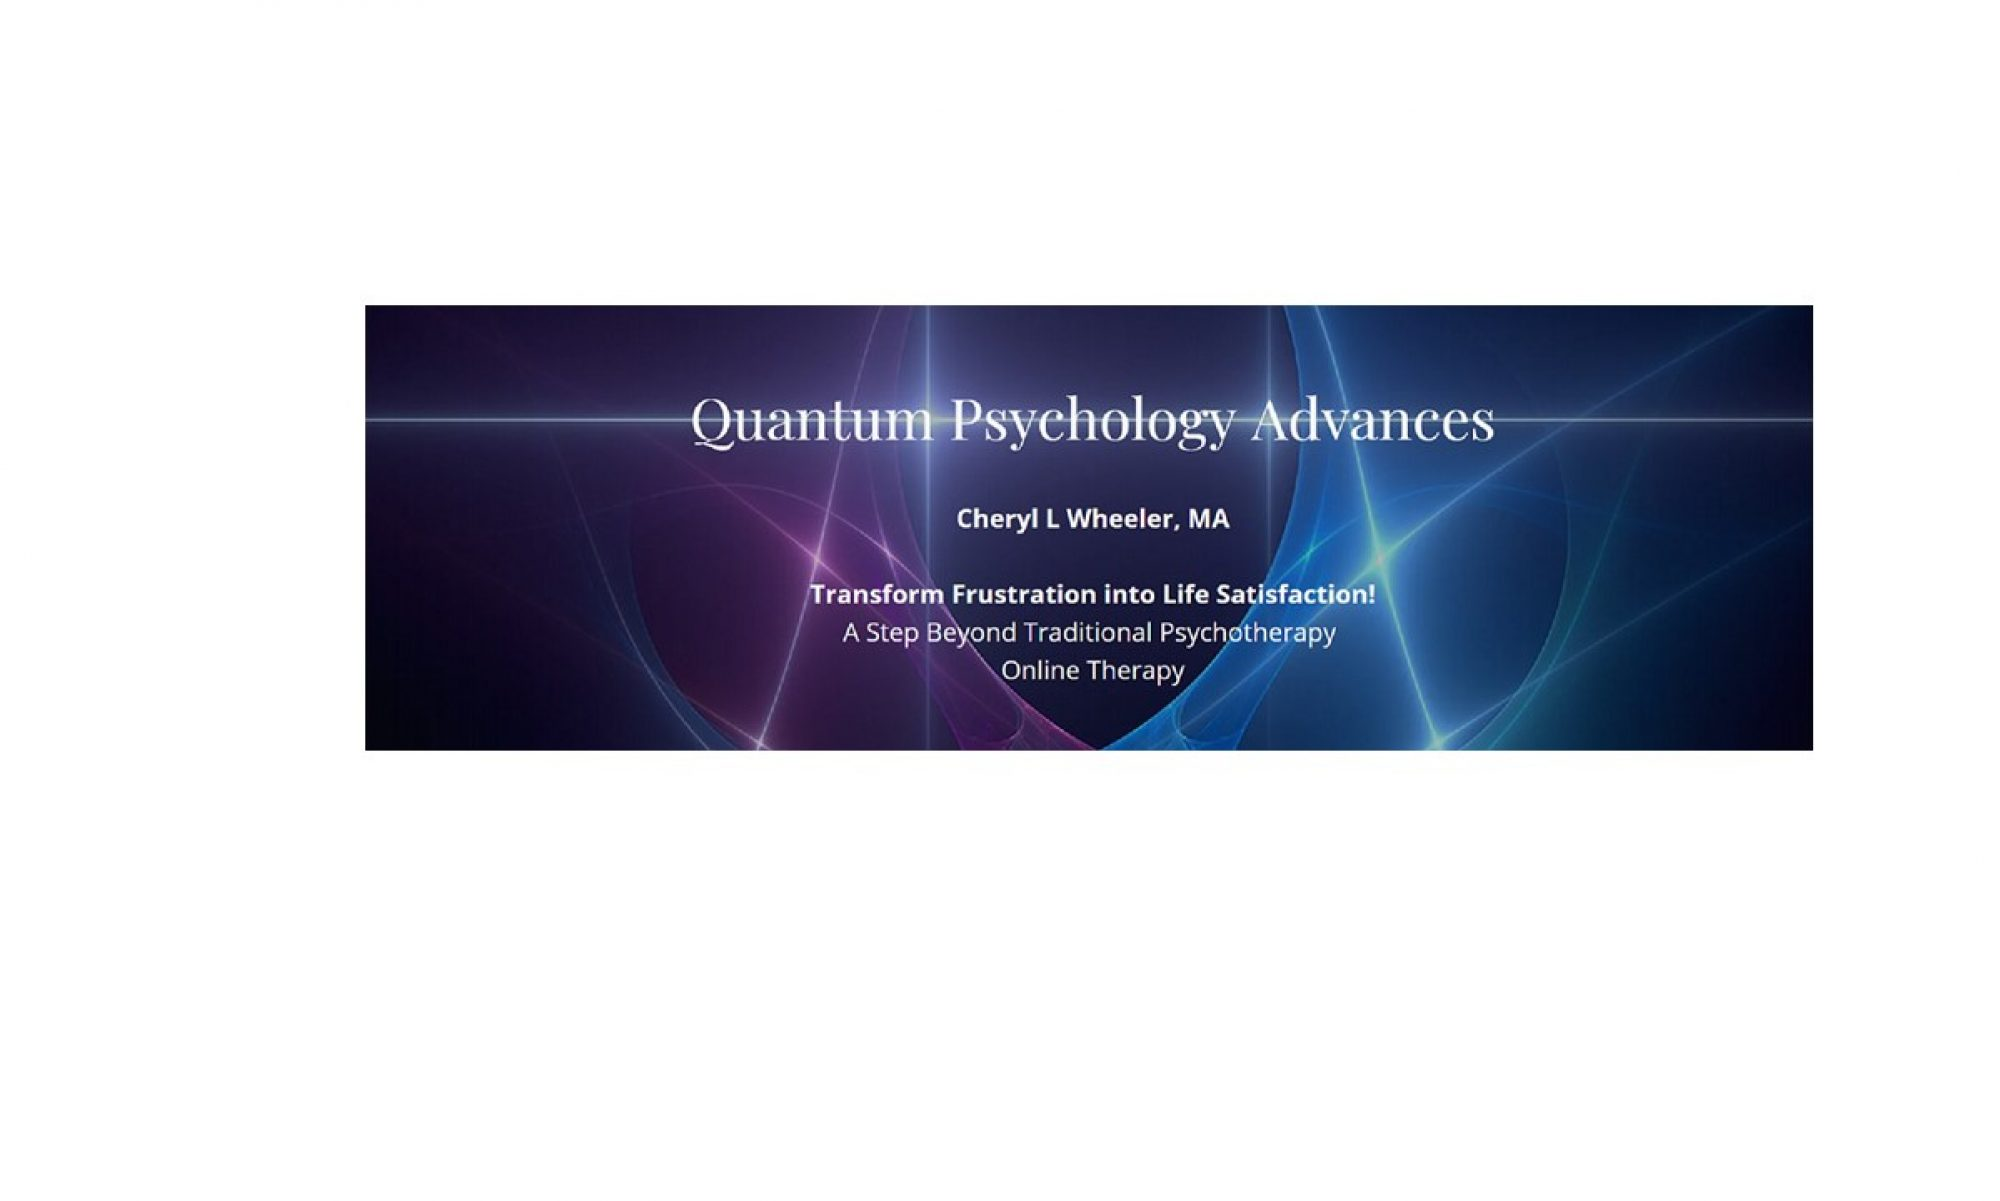 Quantum Psychology Advances ~ Alternatives in Counseling ~ Cheryl L. Wheeler, MA